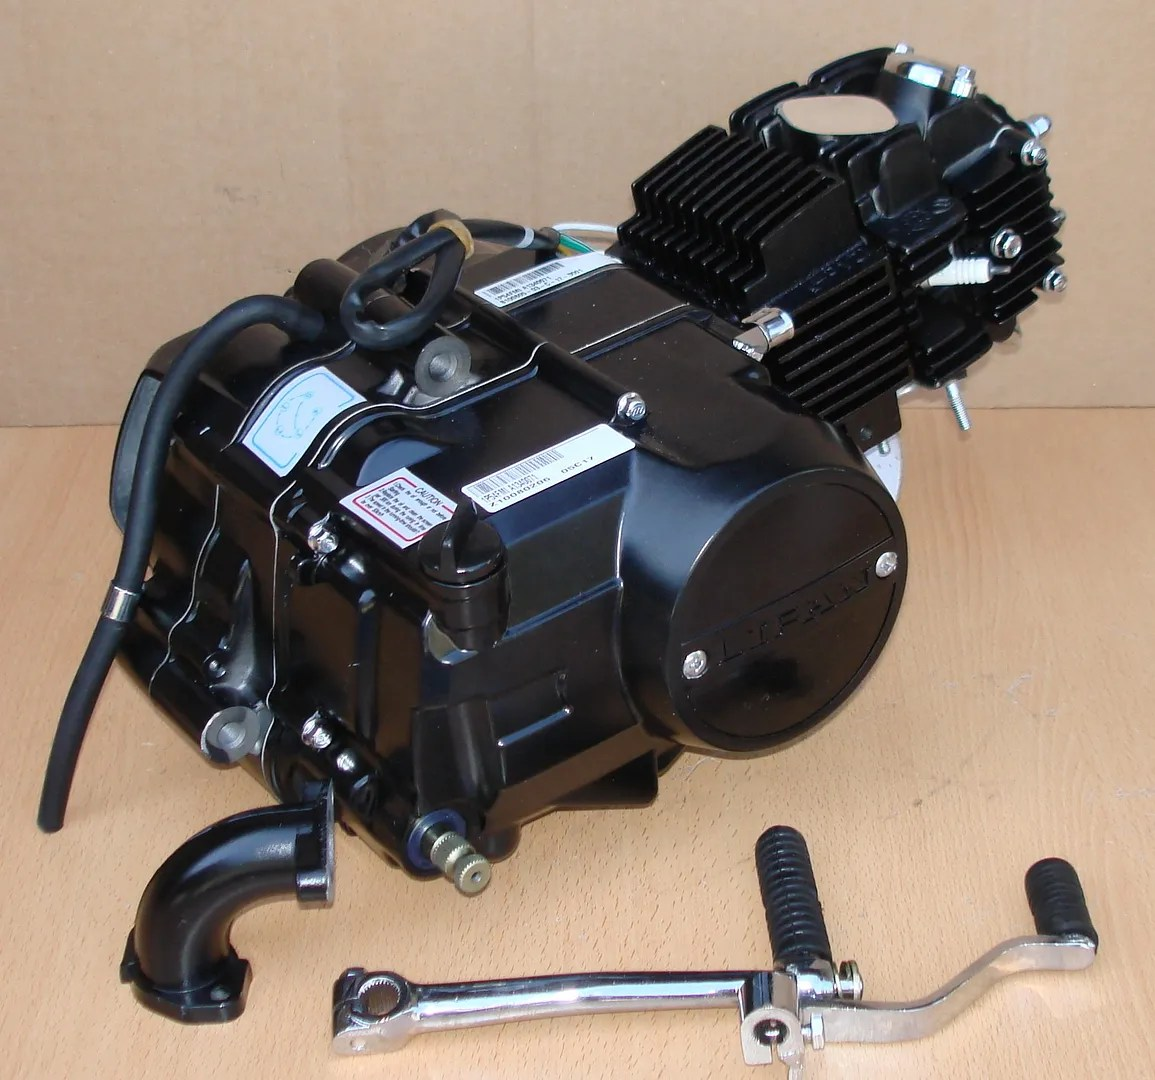 hight resolution of lifan 125cc 1p54fmi engine motor complete kit for honda xr50 crf50